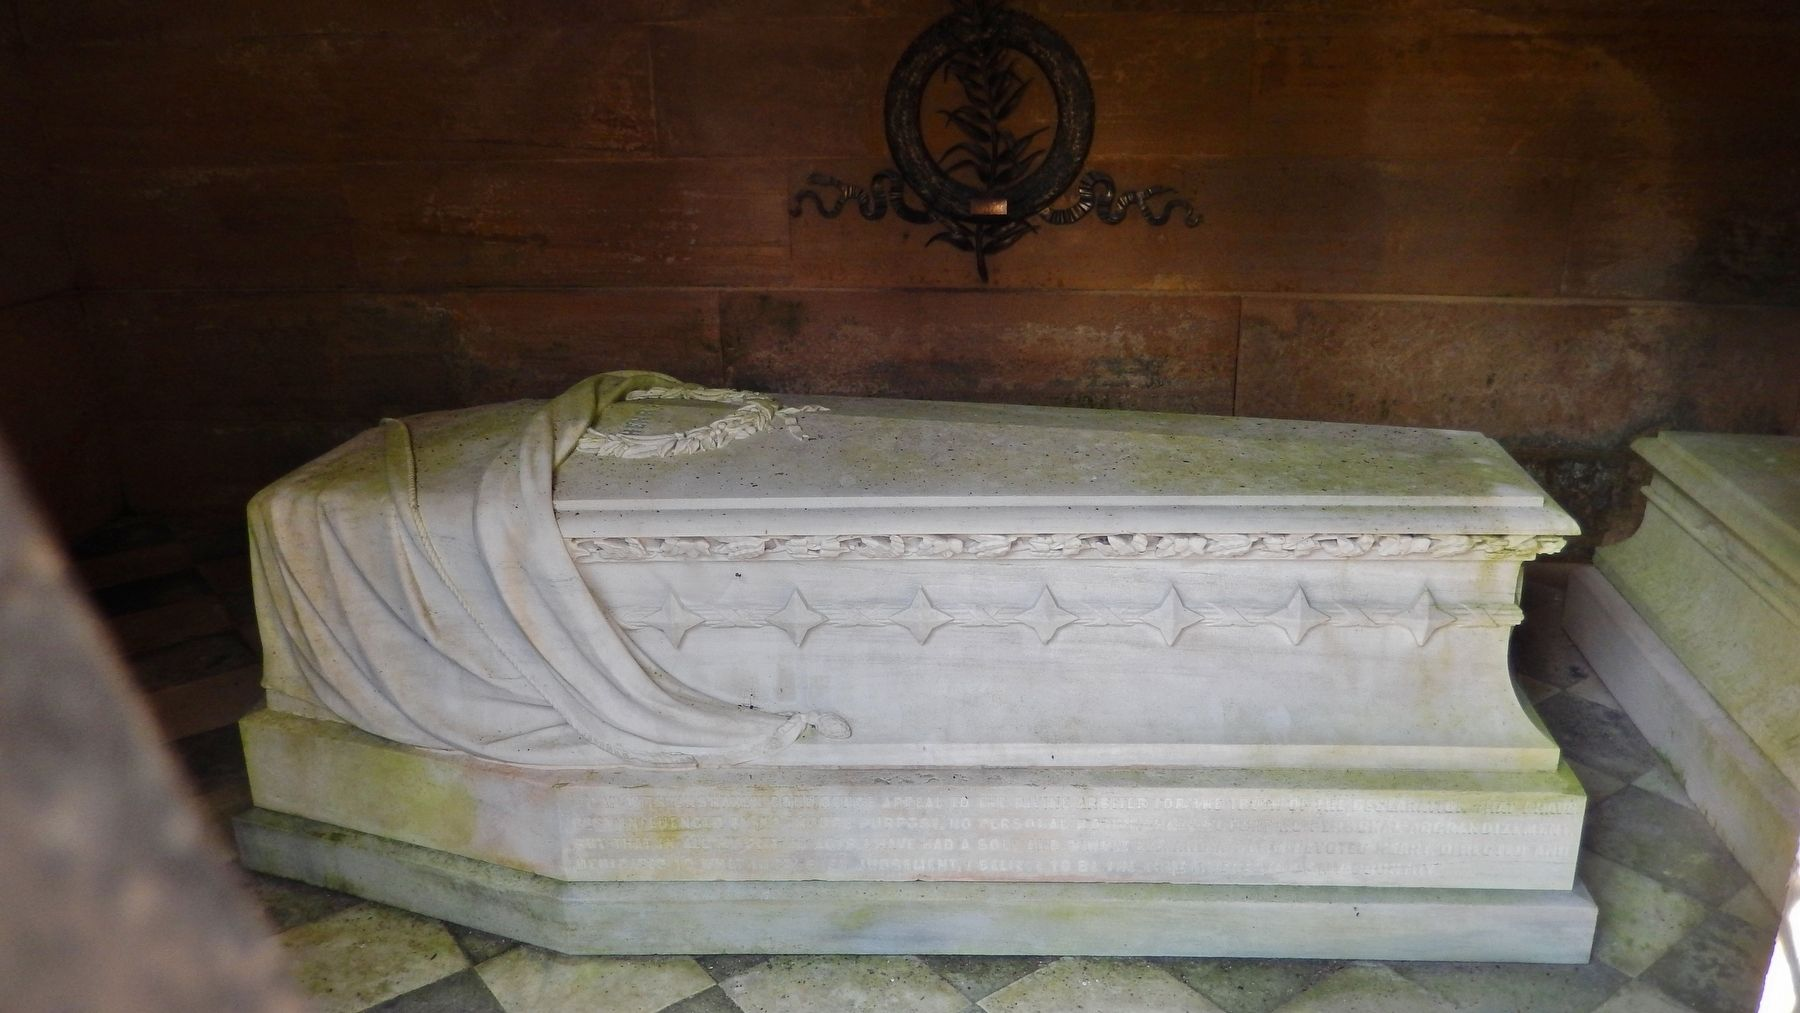 Henry Clay Sarcophagus (<i>view through doorway into mausoleum</i>) image. Click for full size.